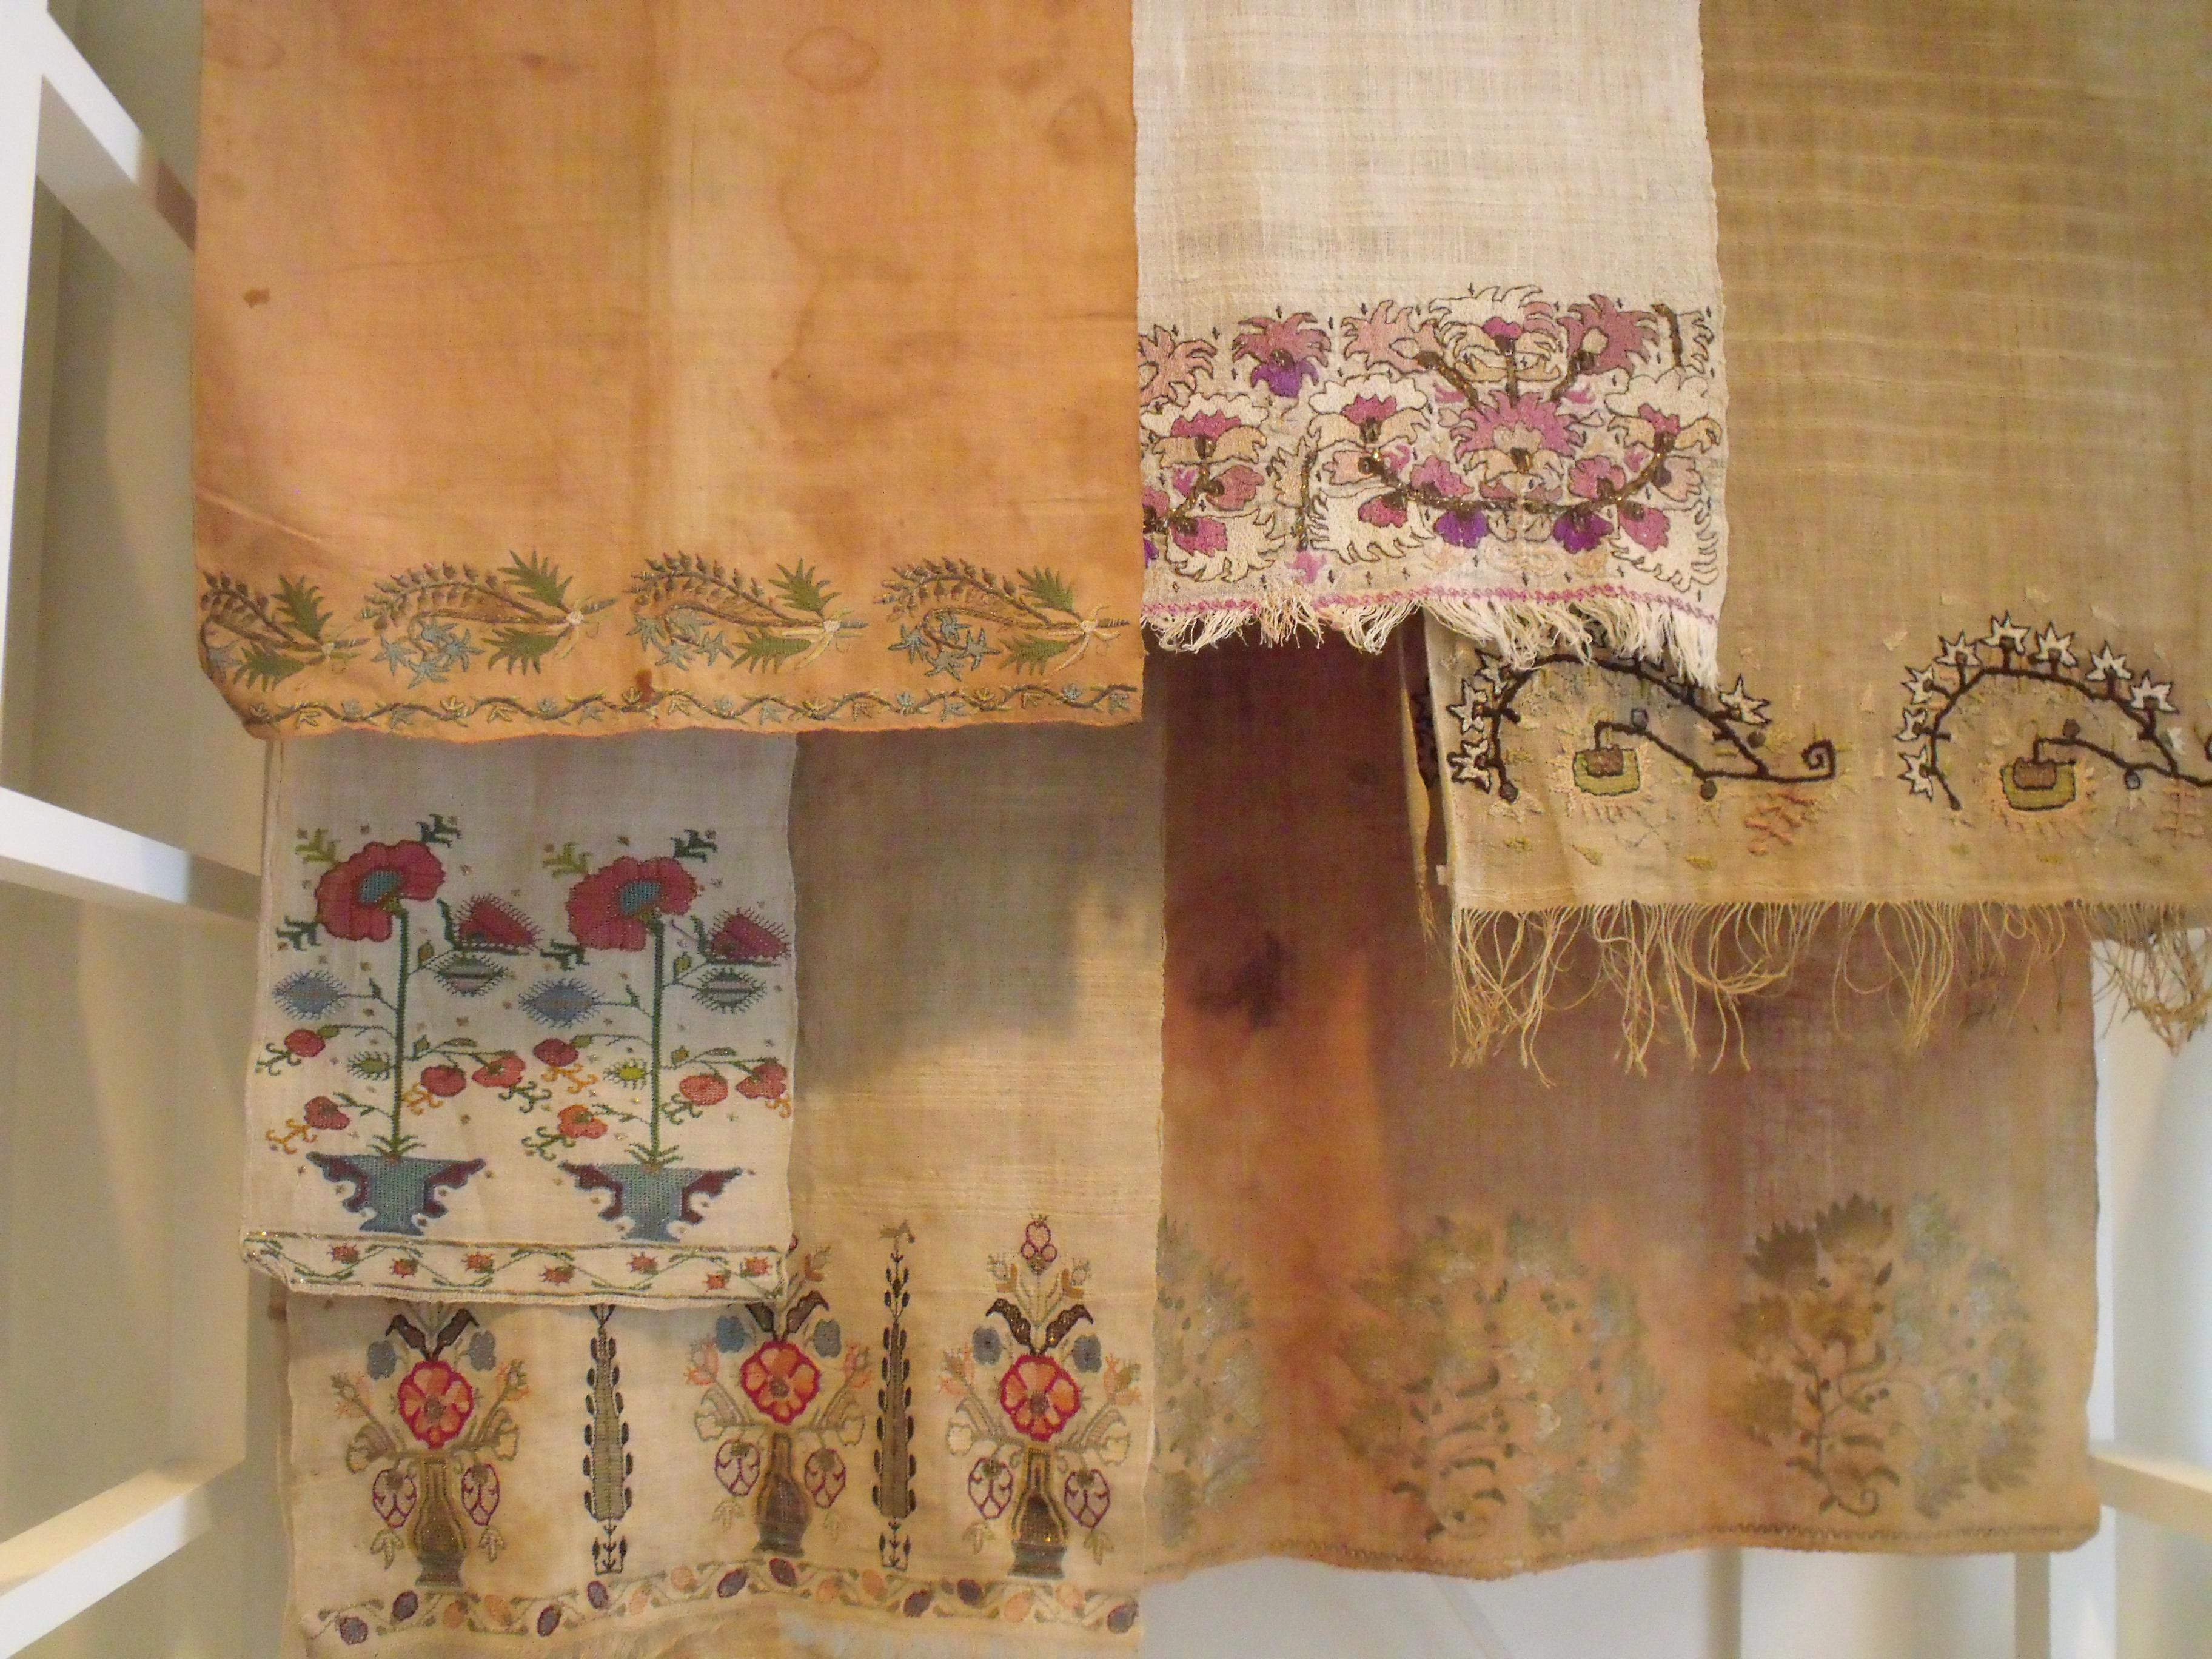 Embroidered towels and sashes, Turkey, 19th to 20th Century. CSROT, Photo: Ruth Clifford